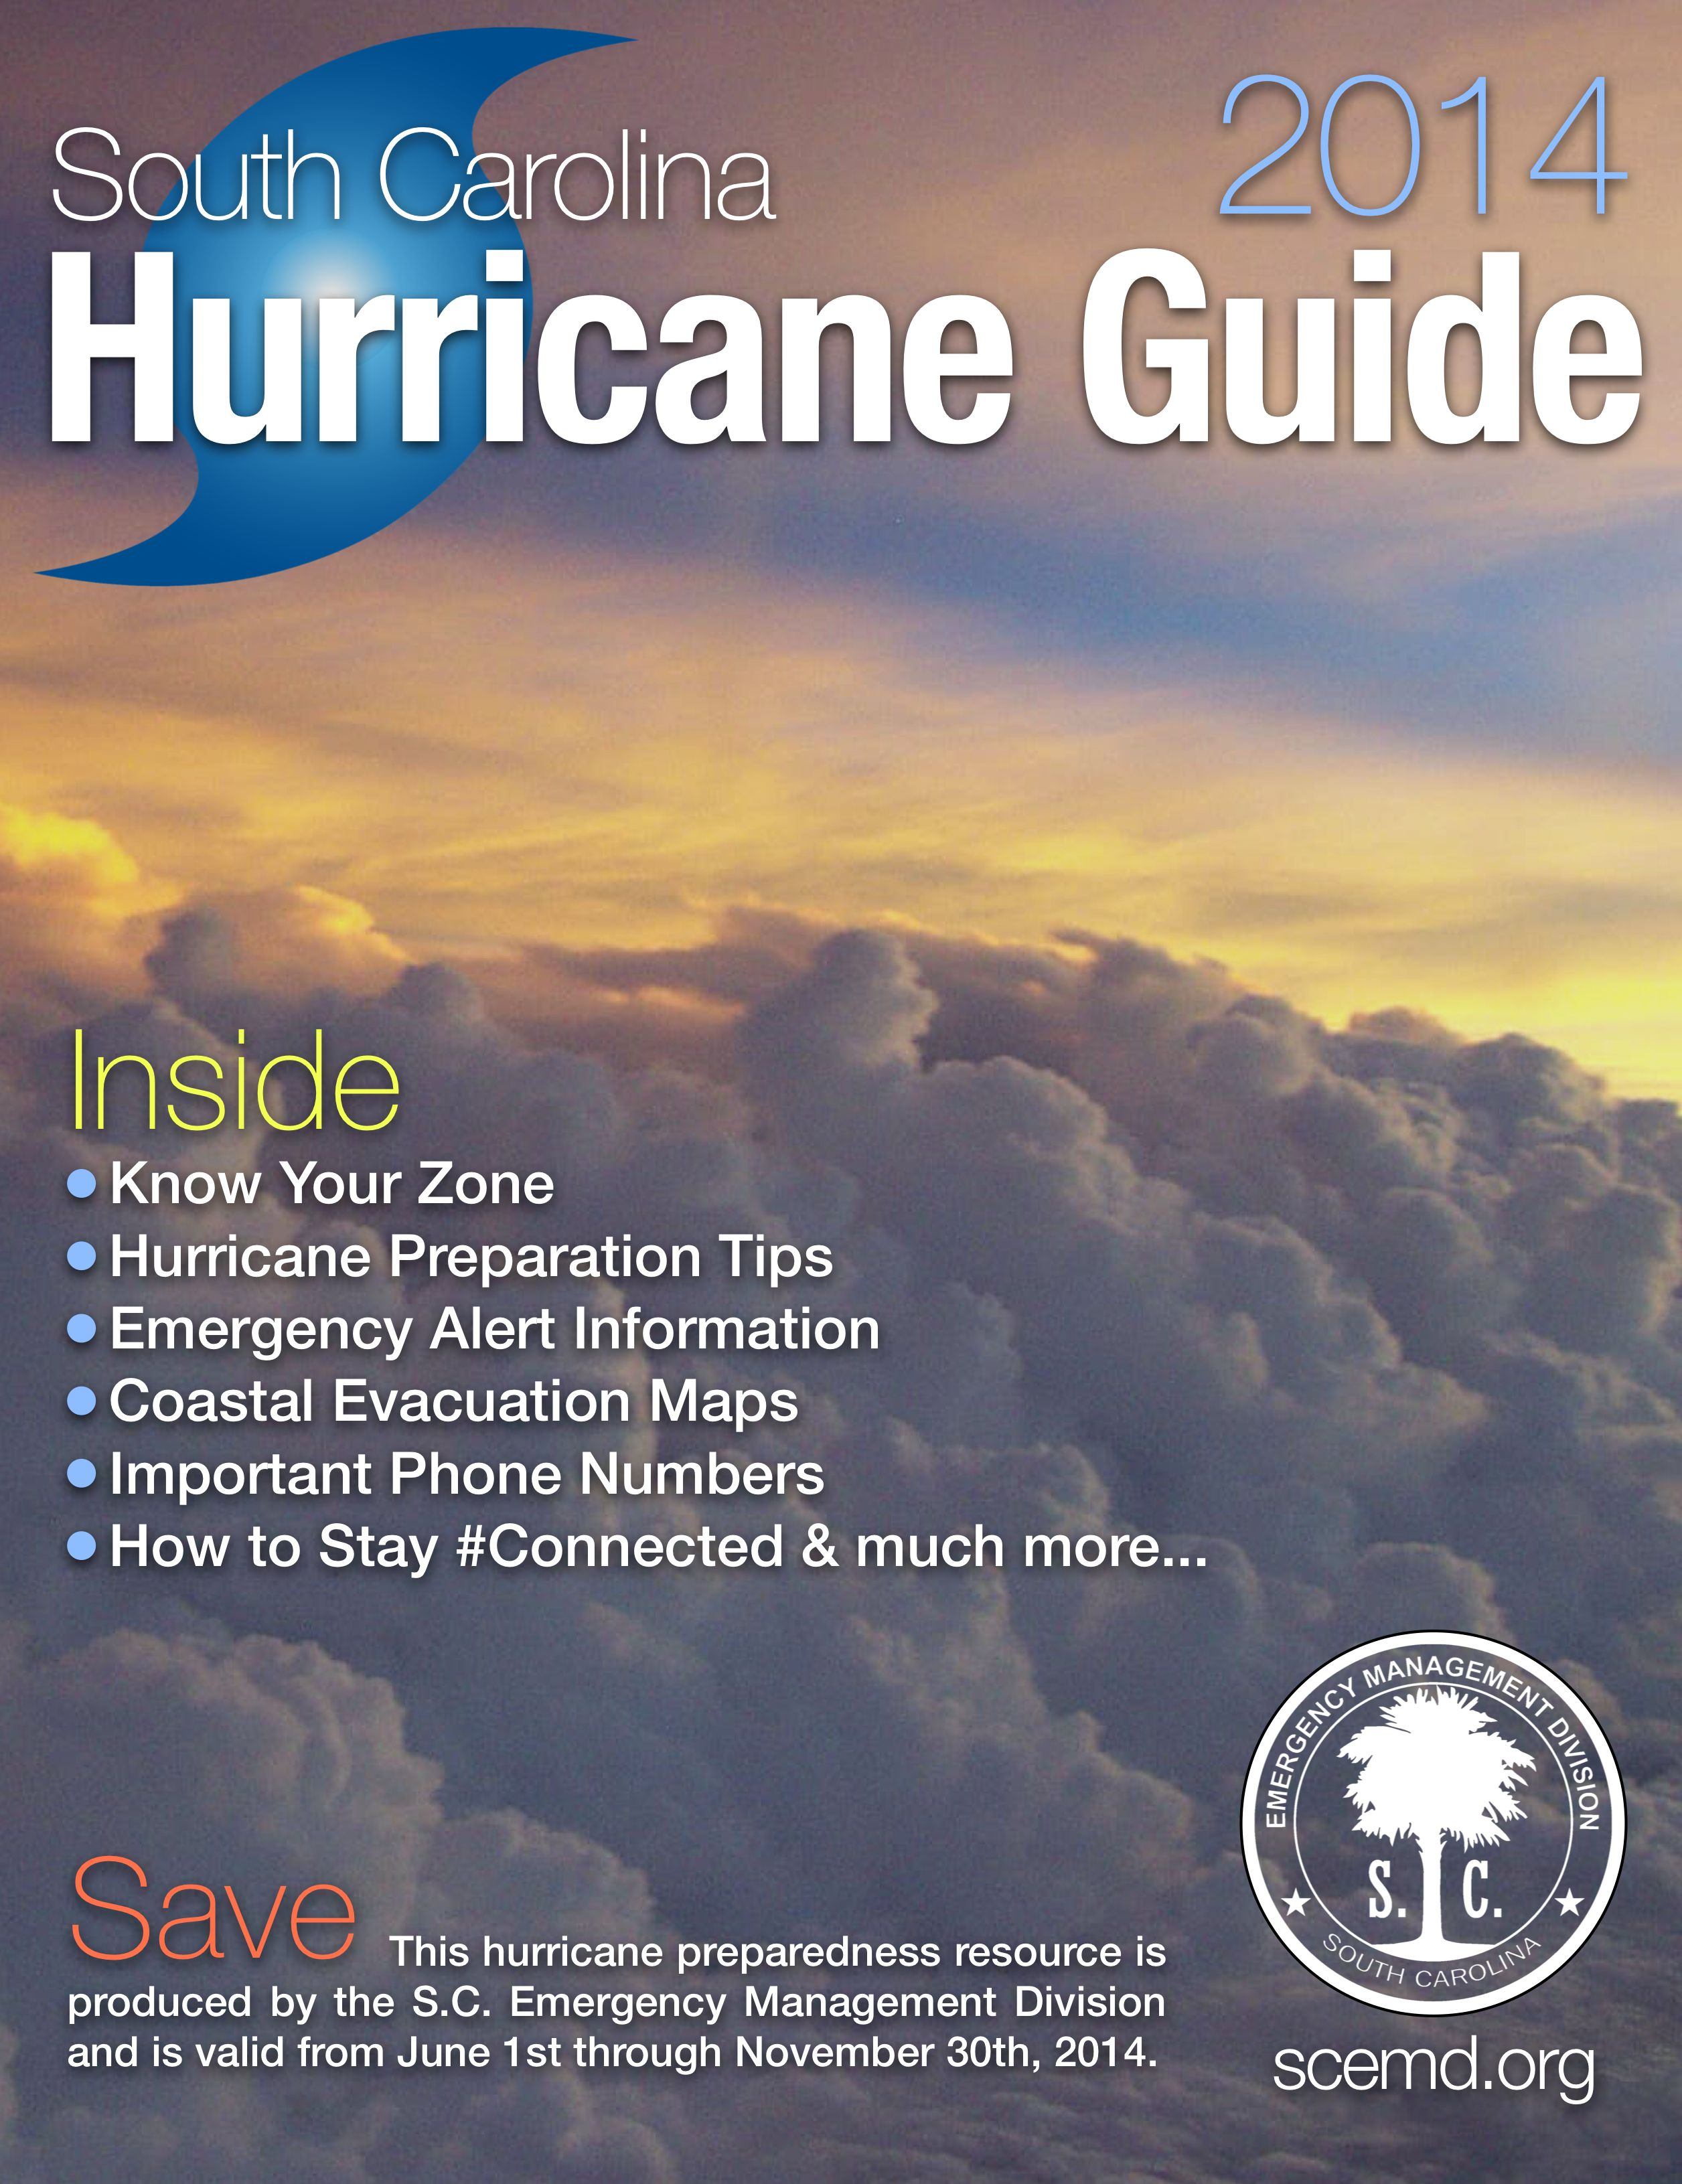 The Official 2014 South Carolina Hurricane Guide is available now! The Guide is valid only for the 2014 hurricane season, which lasts from June 1 through November 30.  SCEMD has compiled important information that can be used before, during and after hurricane threats.  Stop by any Walgreens store in South Carolina to pick up a copy or download a printer-friendly version here: tinyurl.com/SCHurrGuide